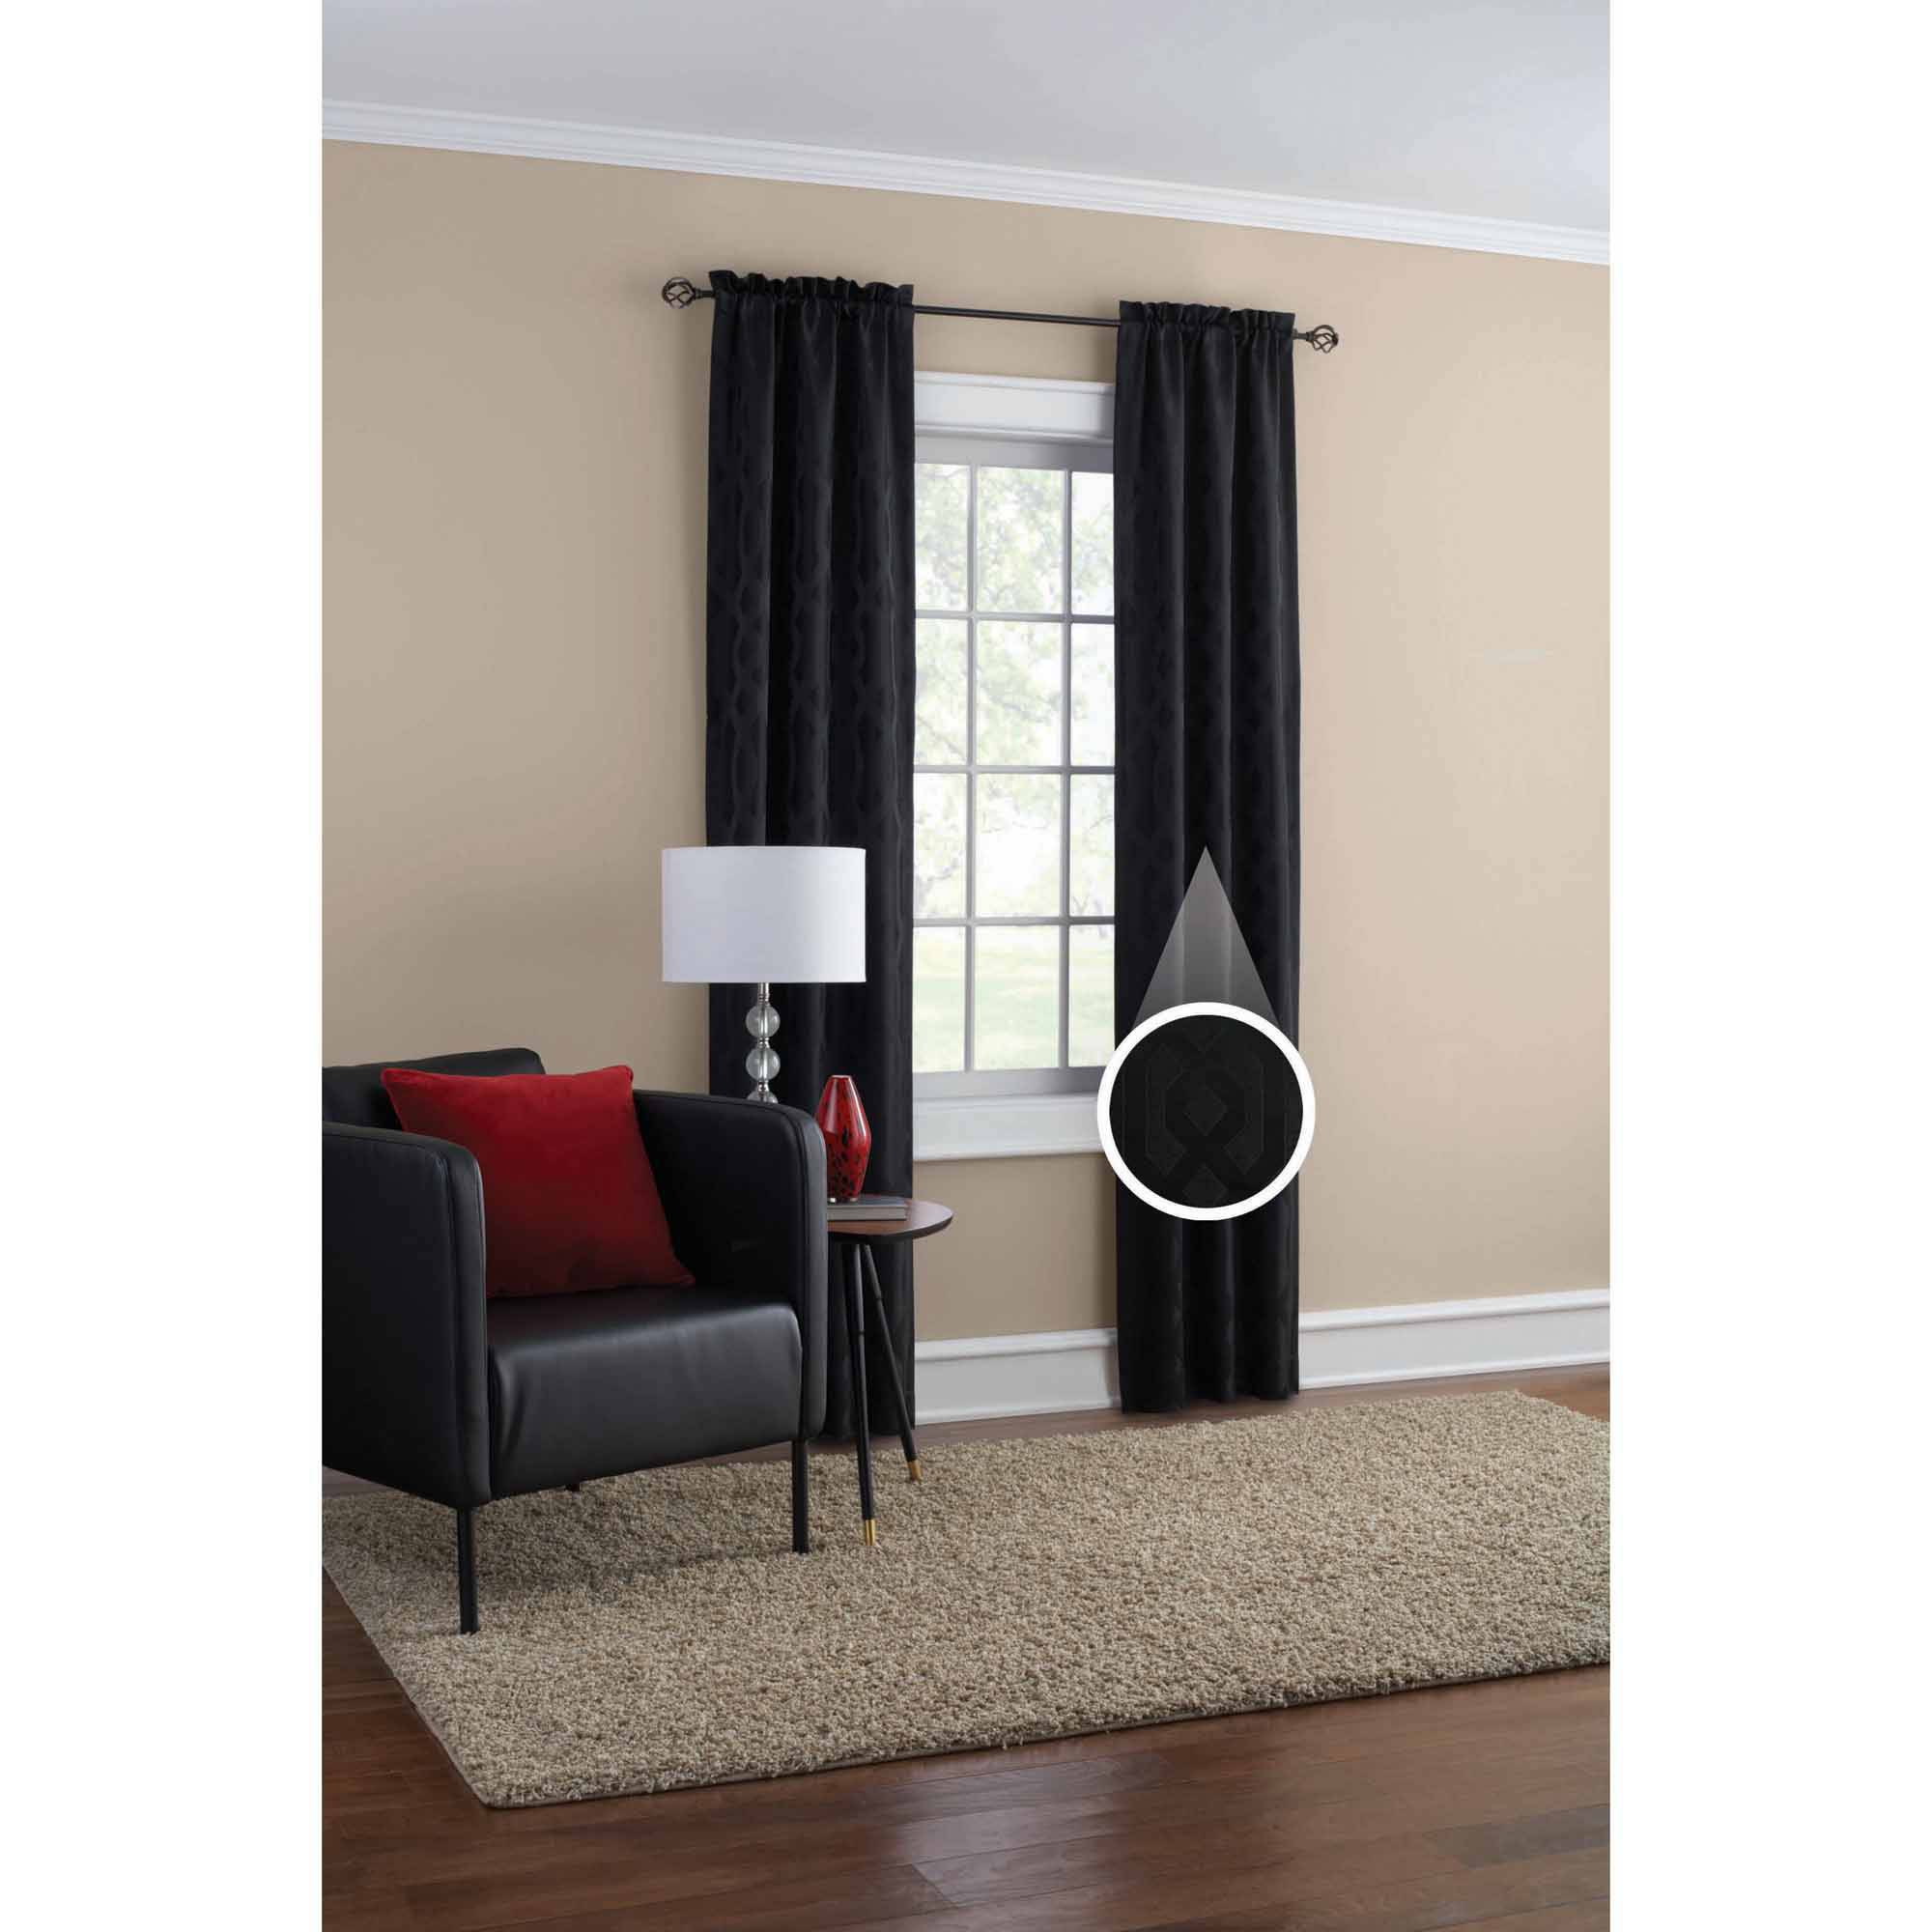 Mainstays Jacquard Window Curtains, Set Of 2